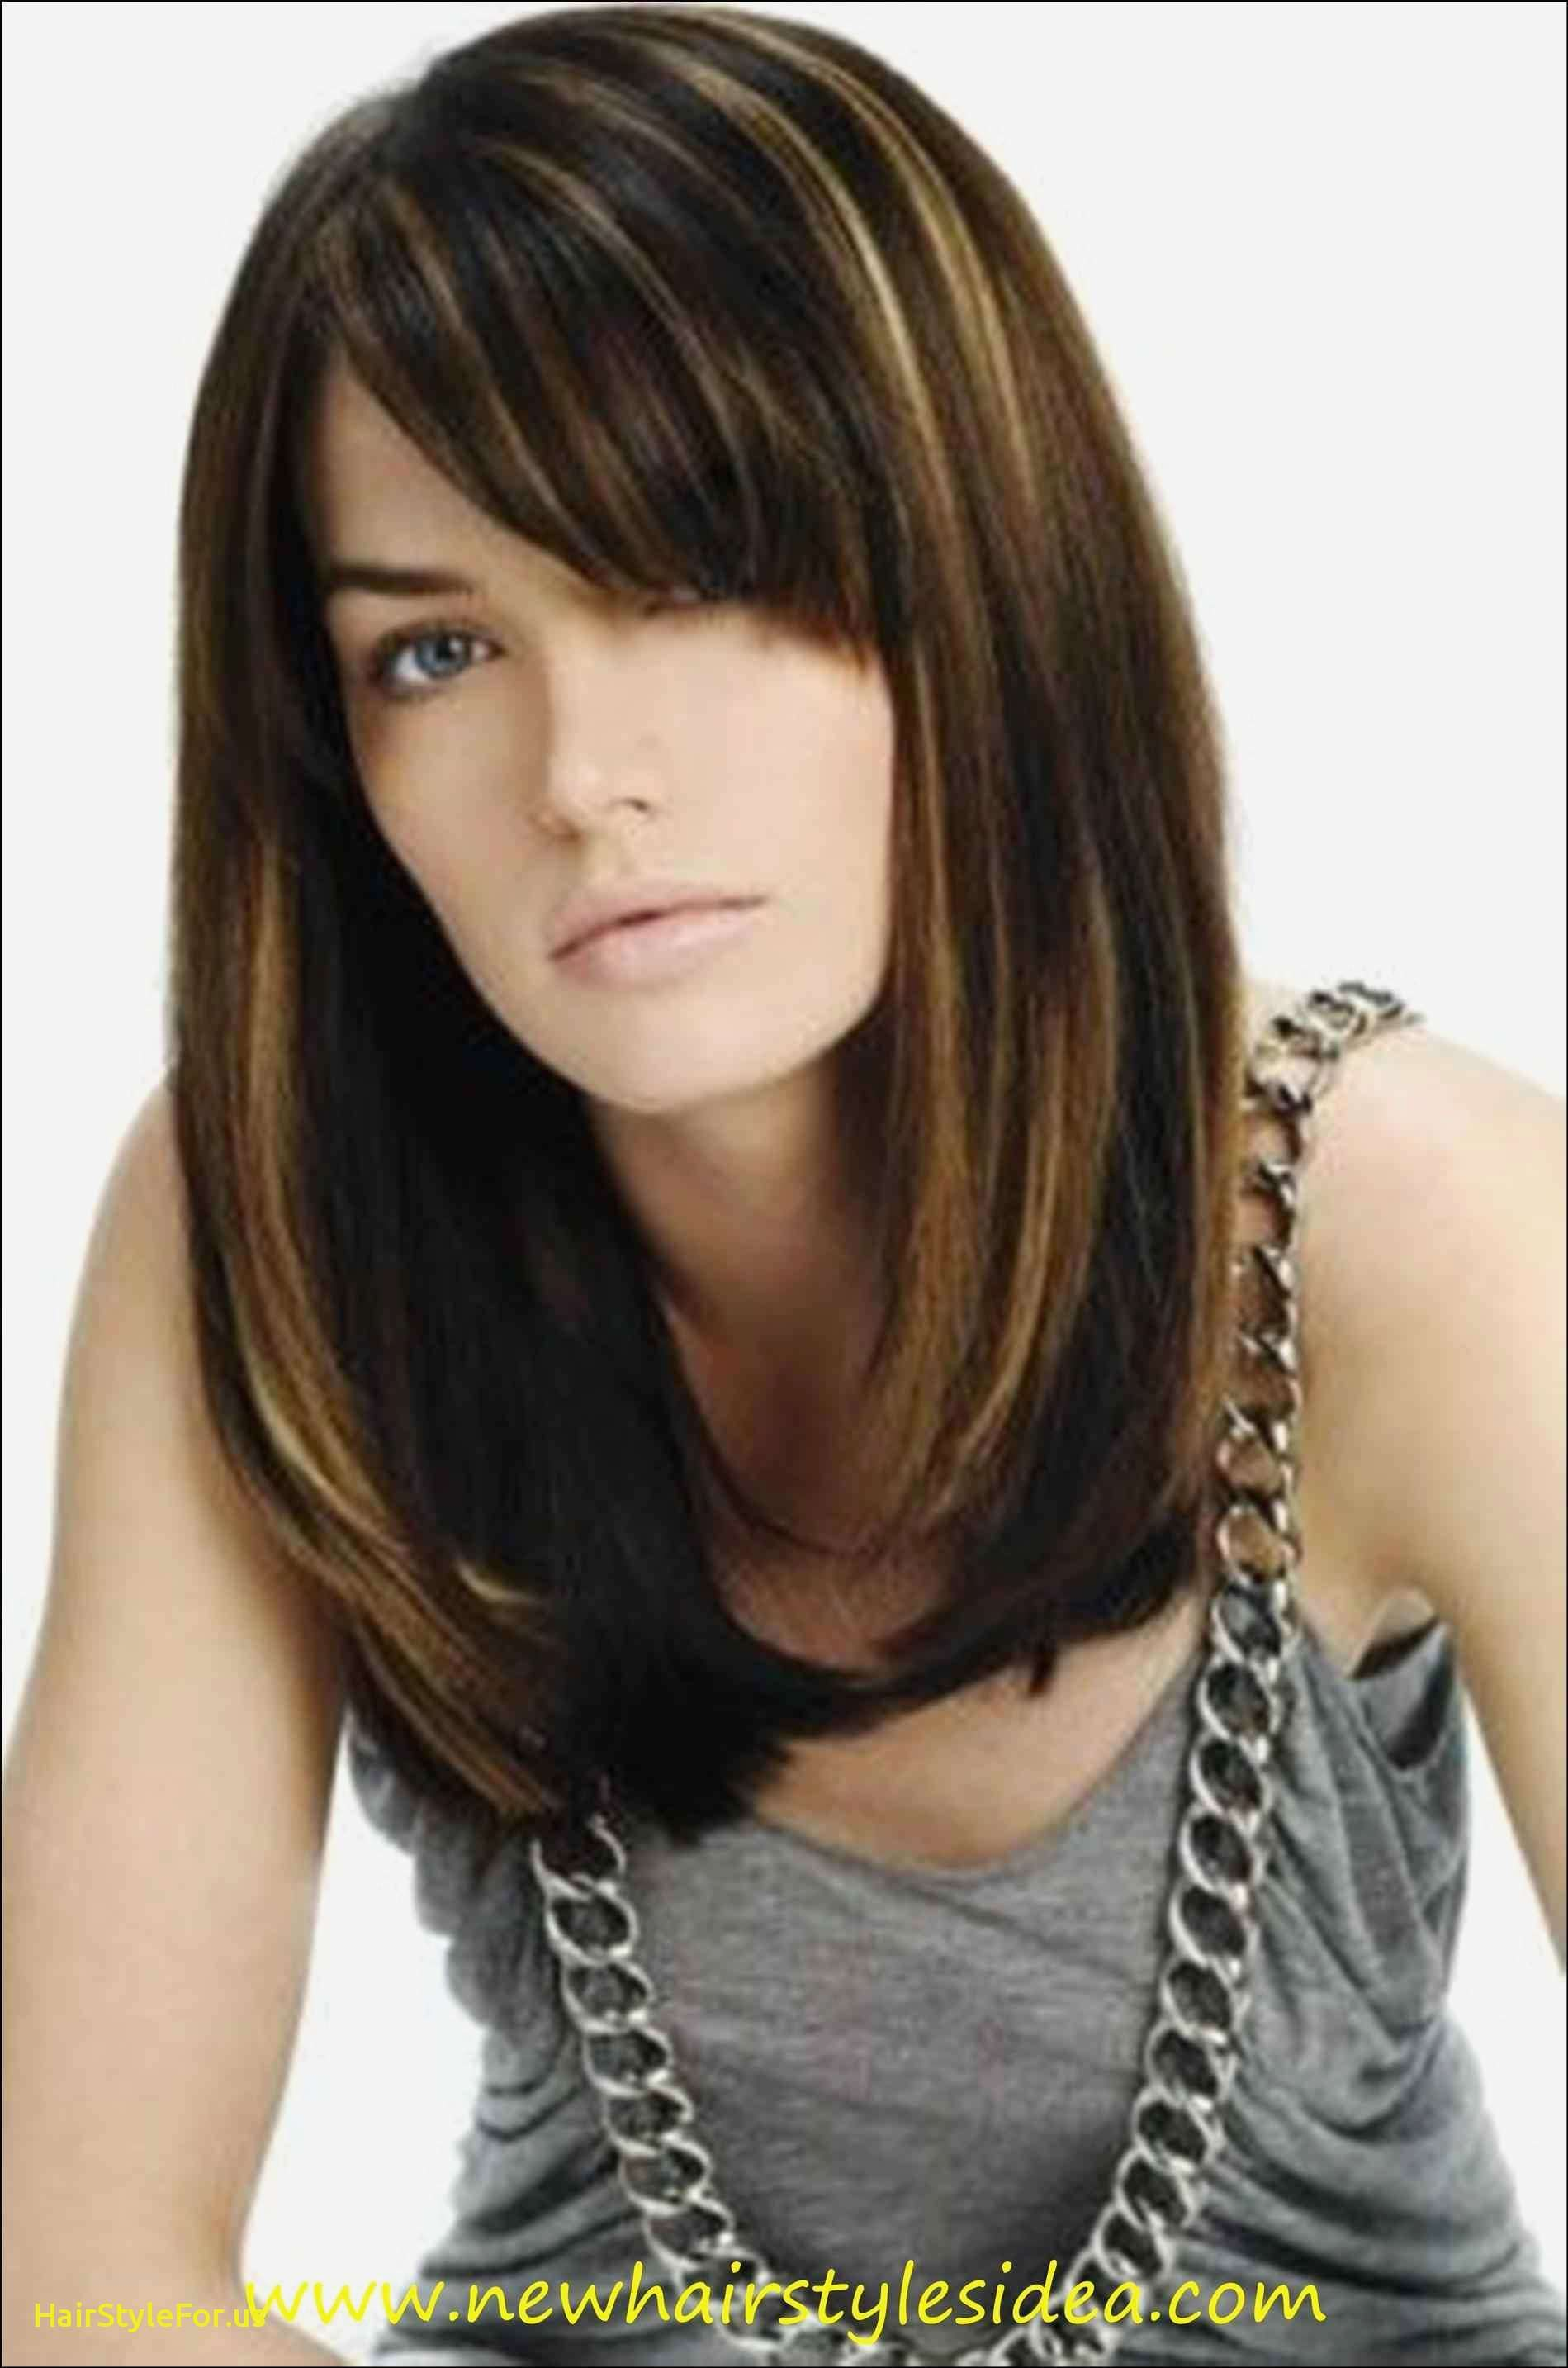 Long Hairstyles Best Long Bob Hairstyles For Round Faces Ideas And Hair Styles Long Bob Hairstyles Long Hair Styles